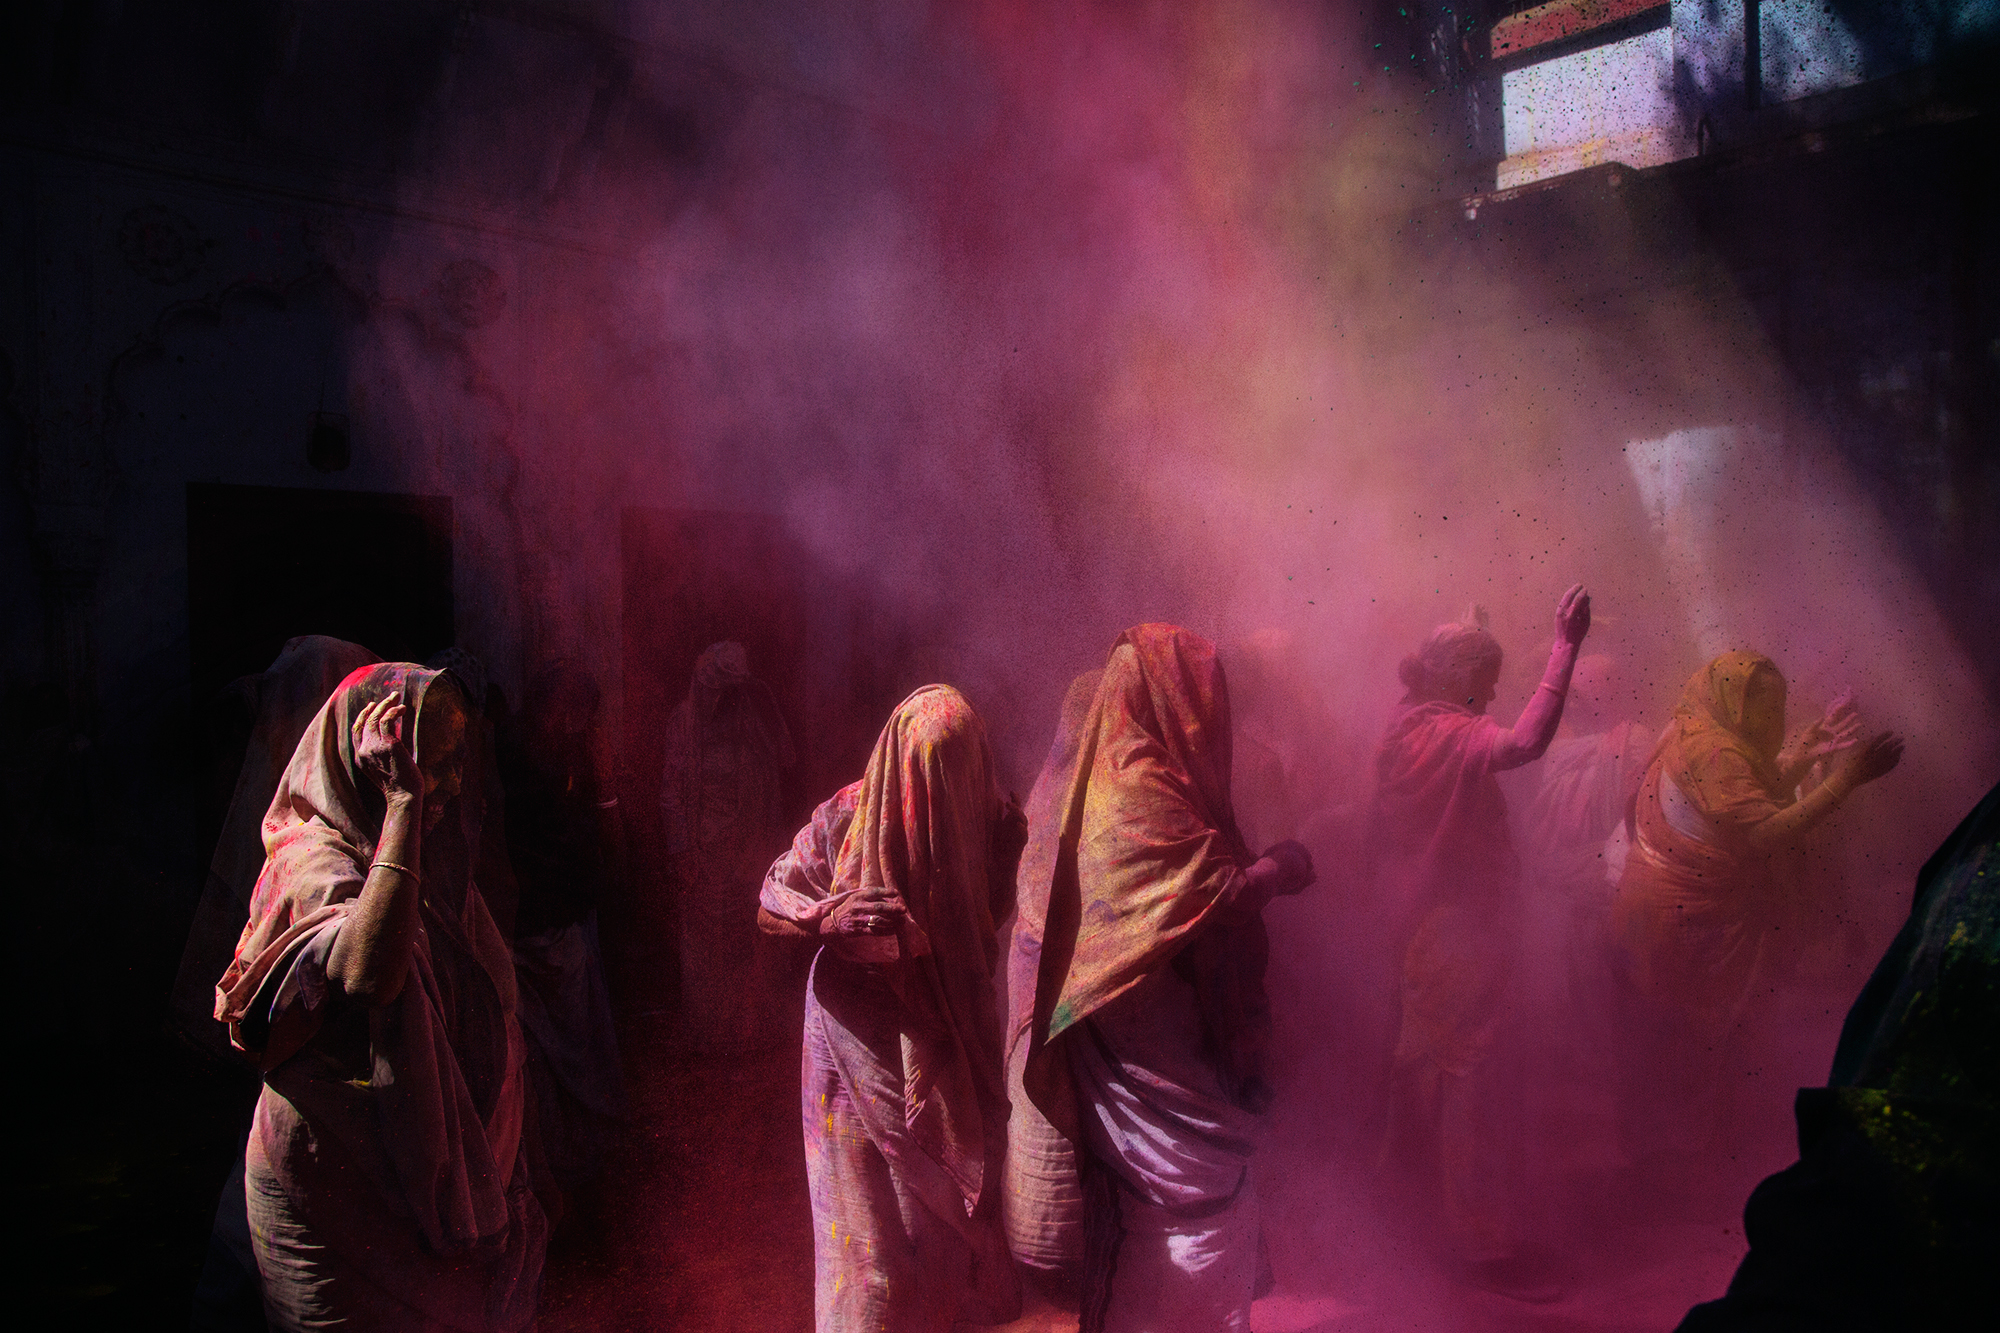 Widows from the Meera Sahabhhagini Ashram celebrate the Holi Festival in Vrindavan, Uttar Pradesh, India. Over the past years they have been encouraged to engage in celebrations by social organisations that are attempting to raise their status in contemporary Indian society